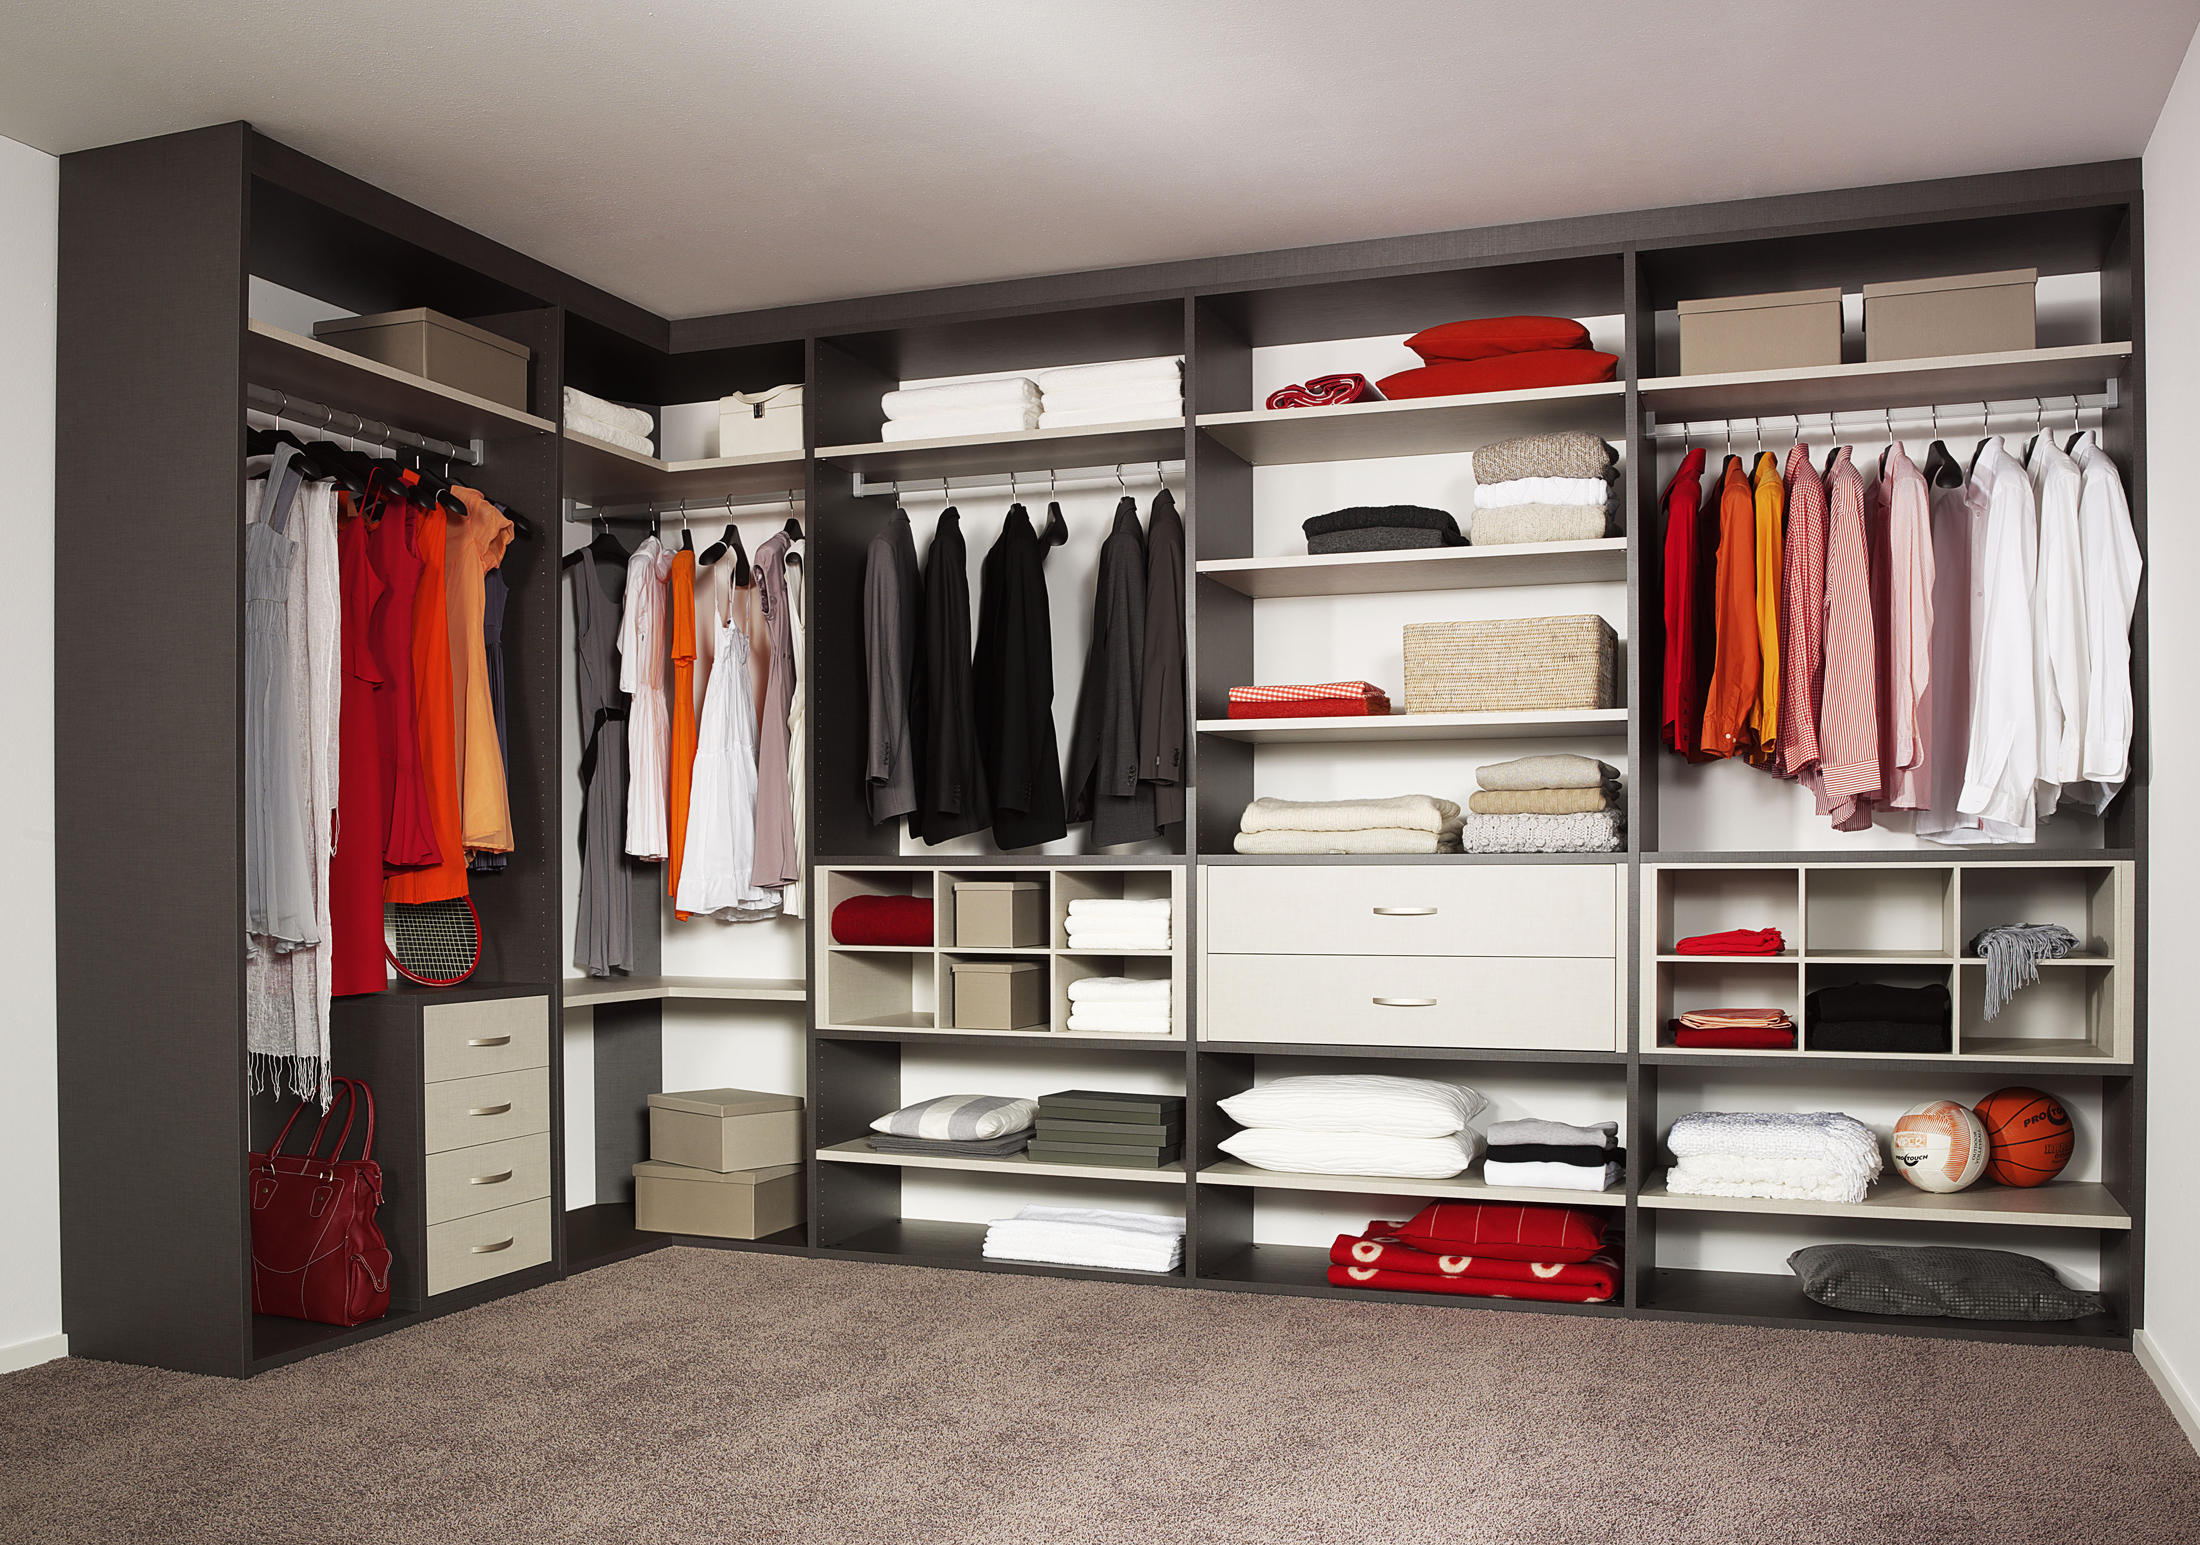 legno interior closet storage system walk in wardrobes from